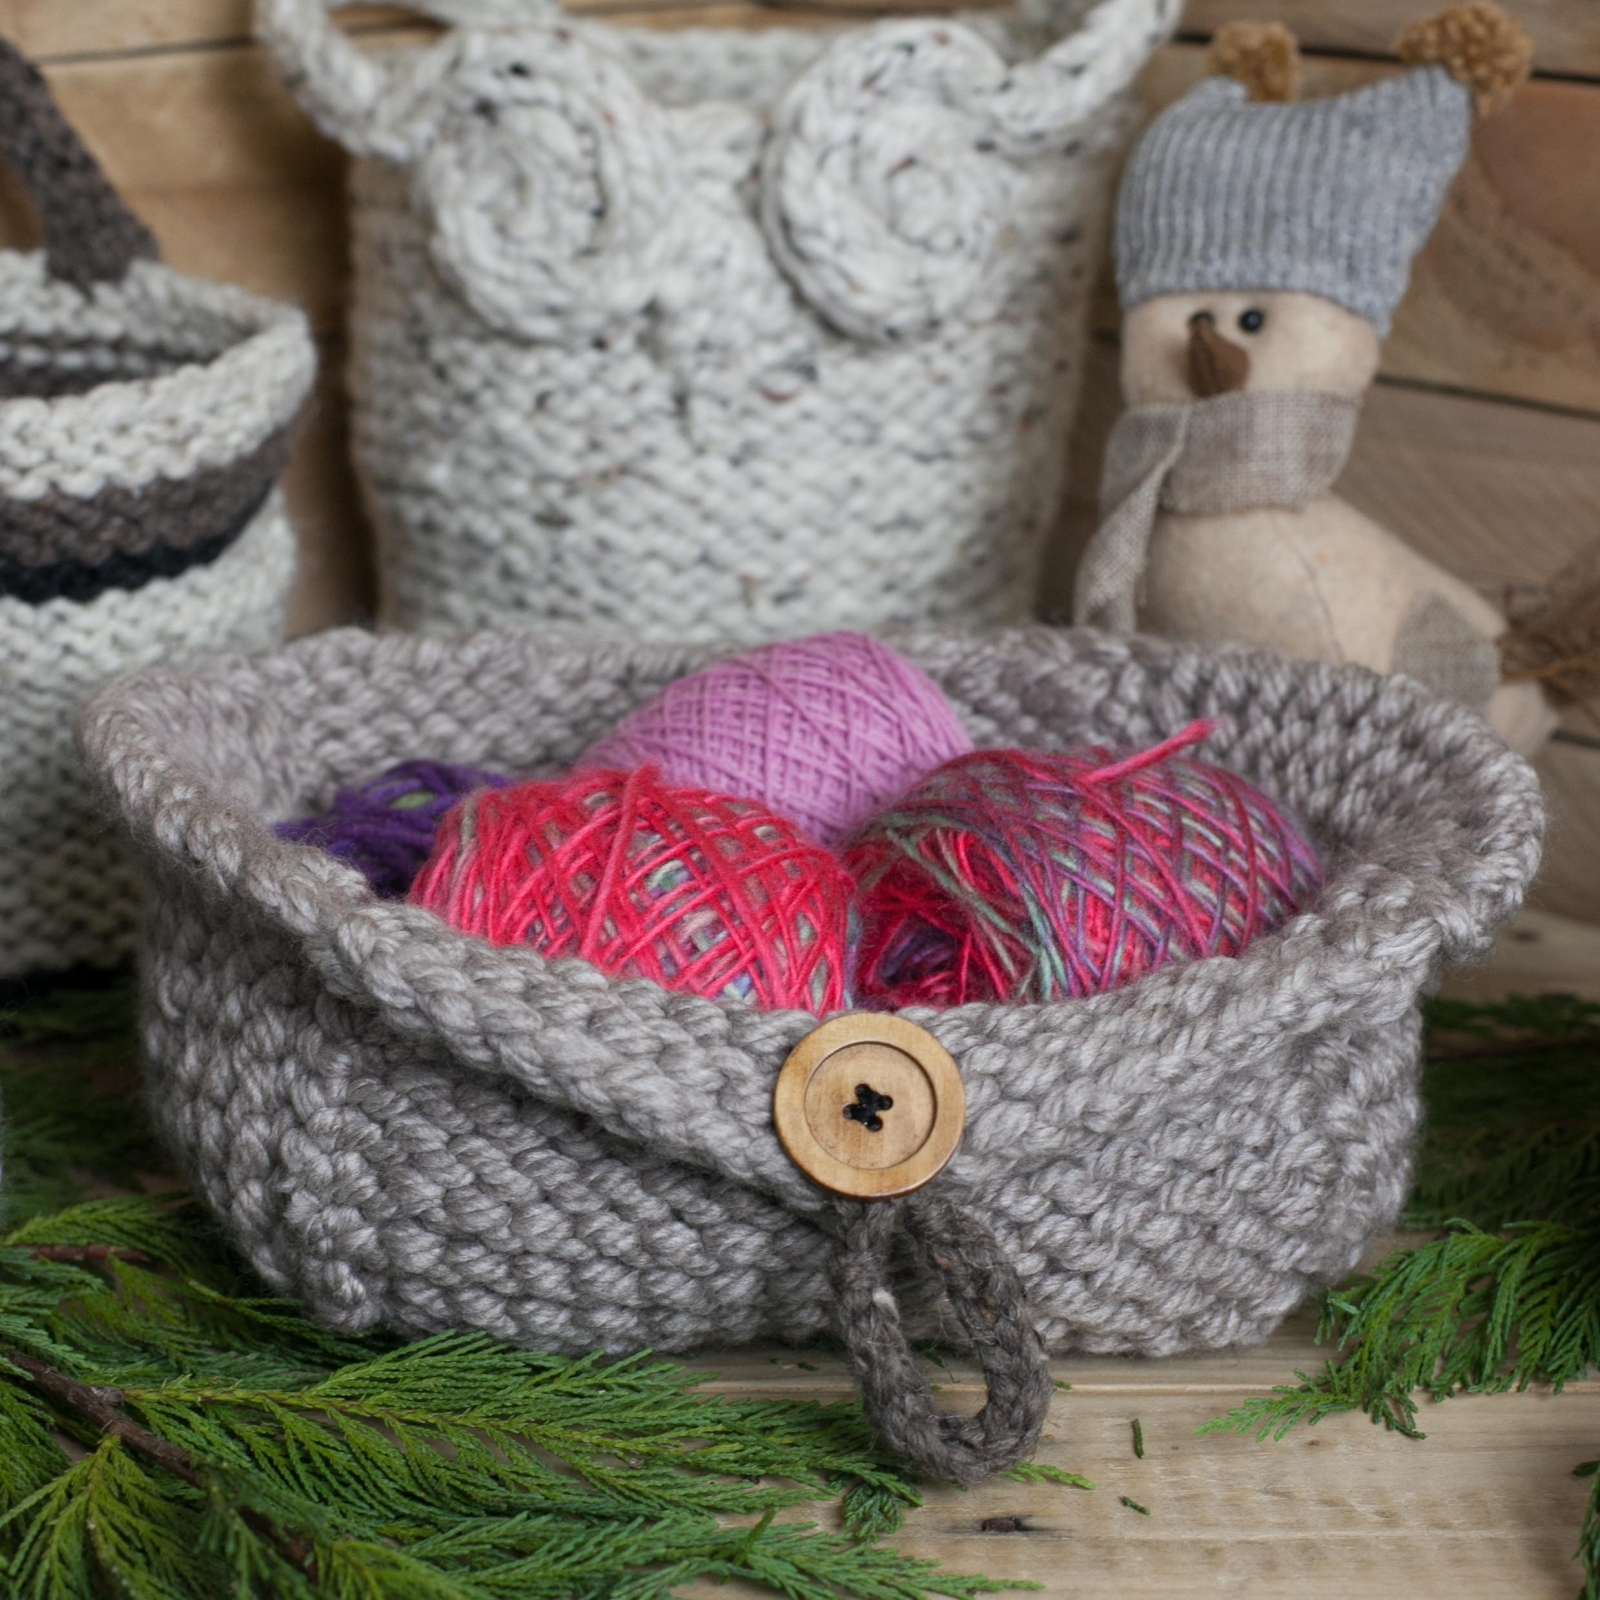 Loom knit basket collection owl basket patterns this moment is loom knit basket patterns owl basket bread basket yarn basket door knob bankloansurffo Images